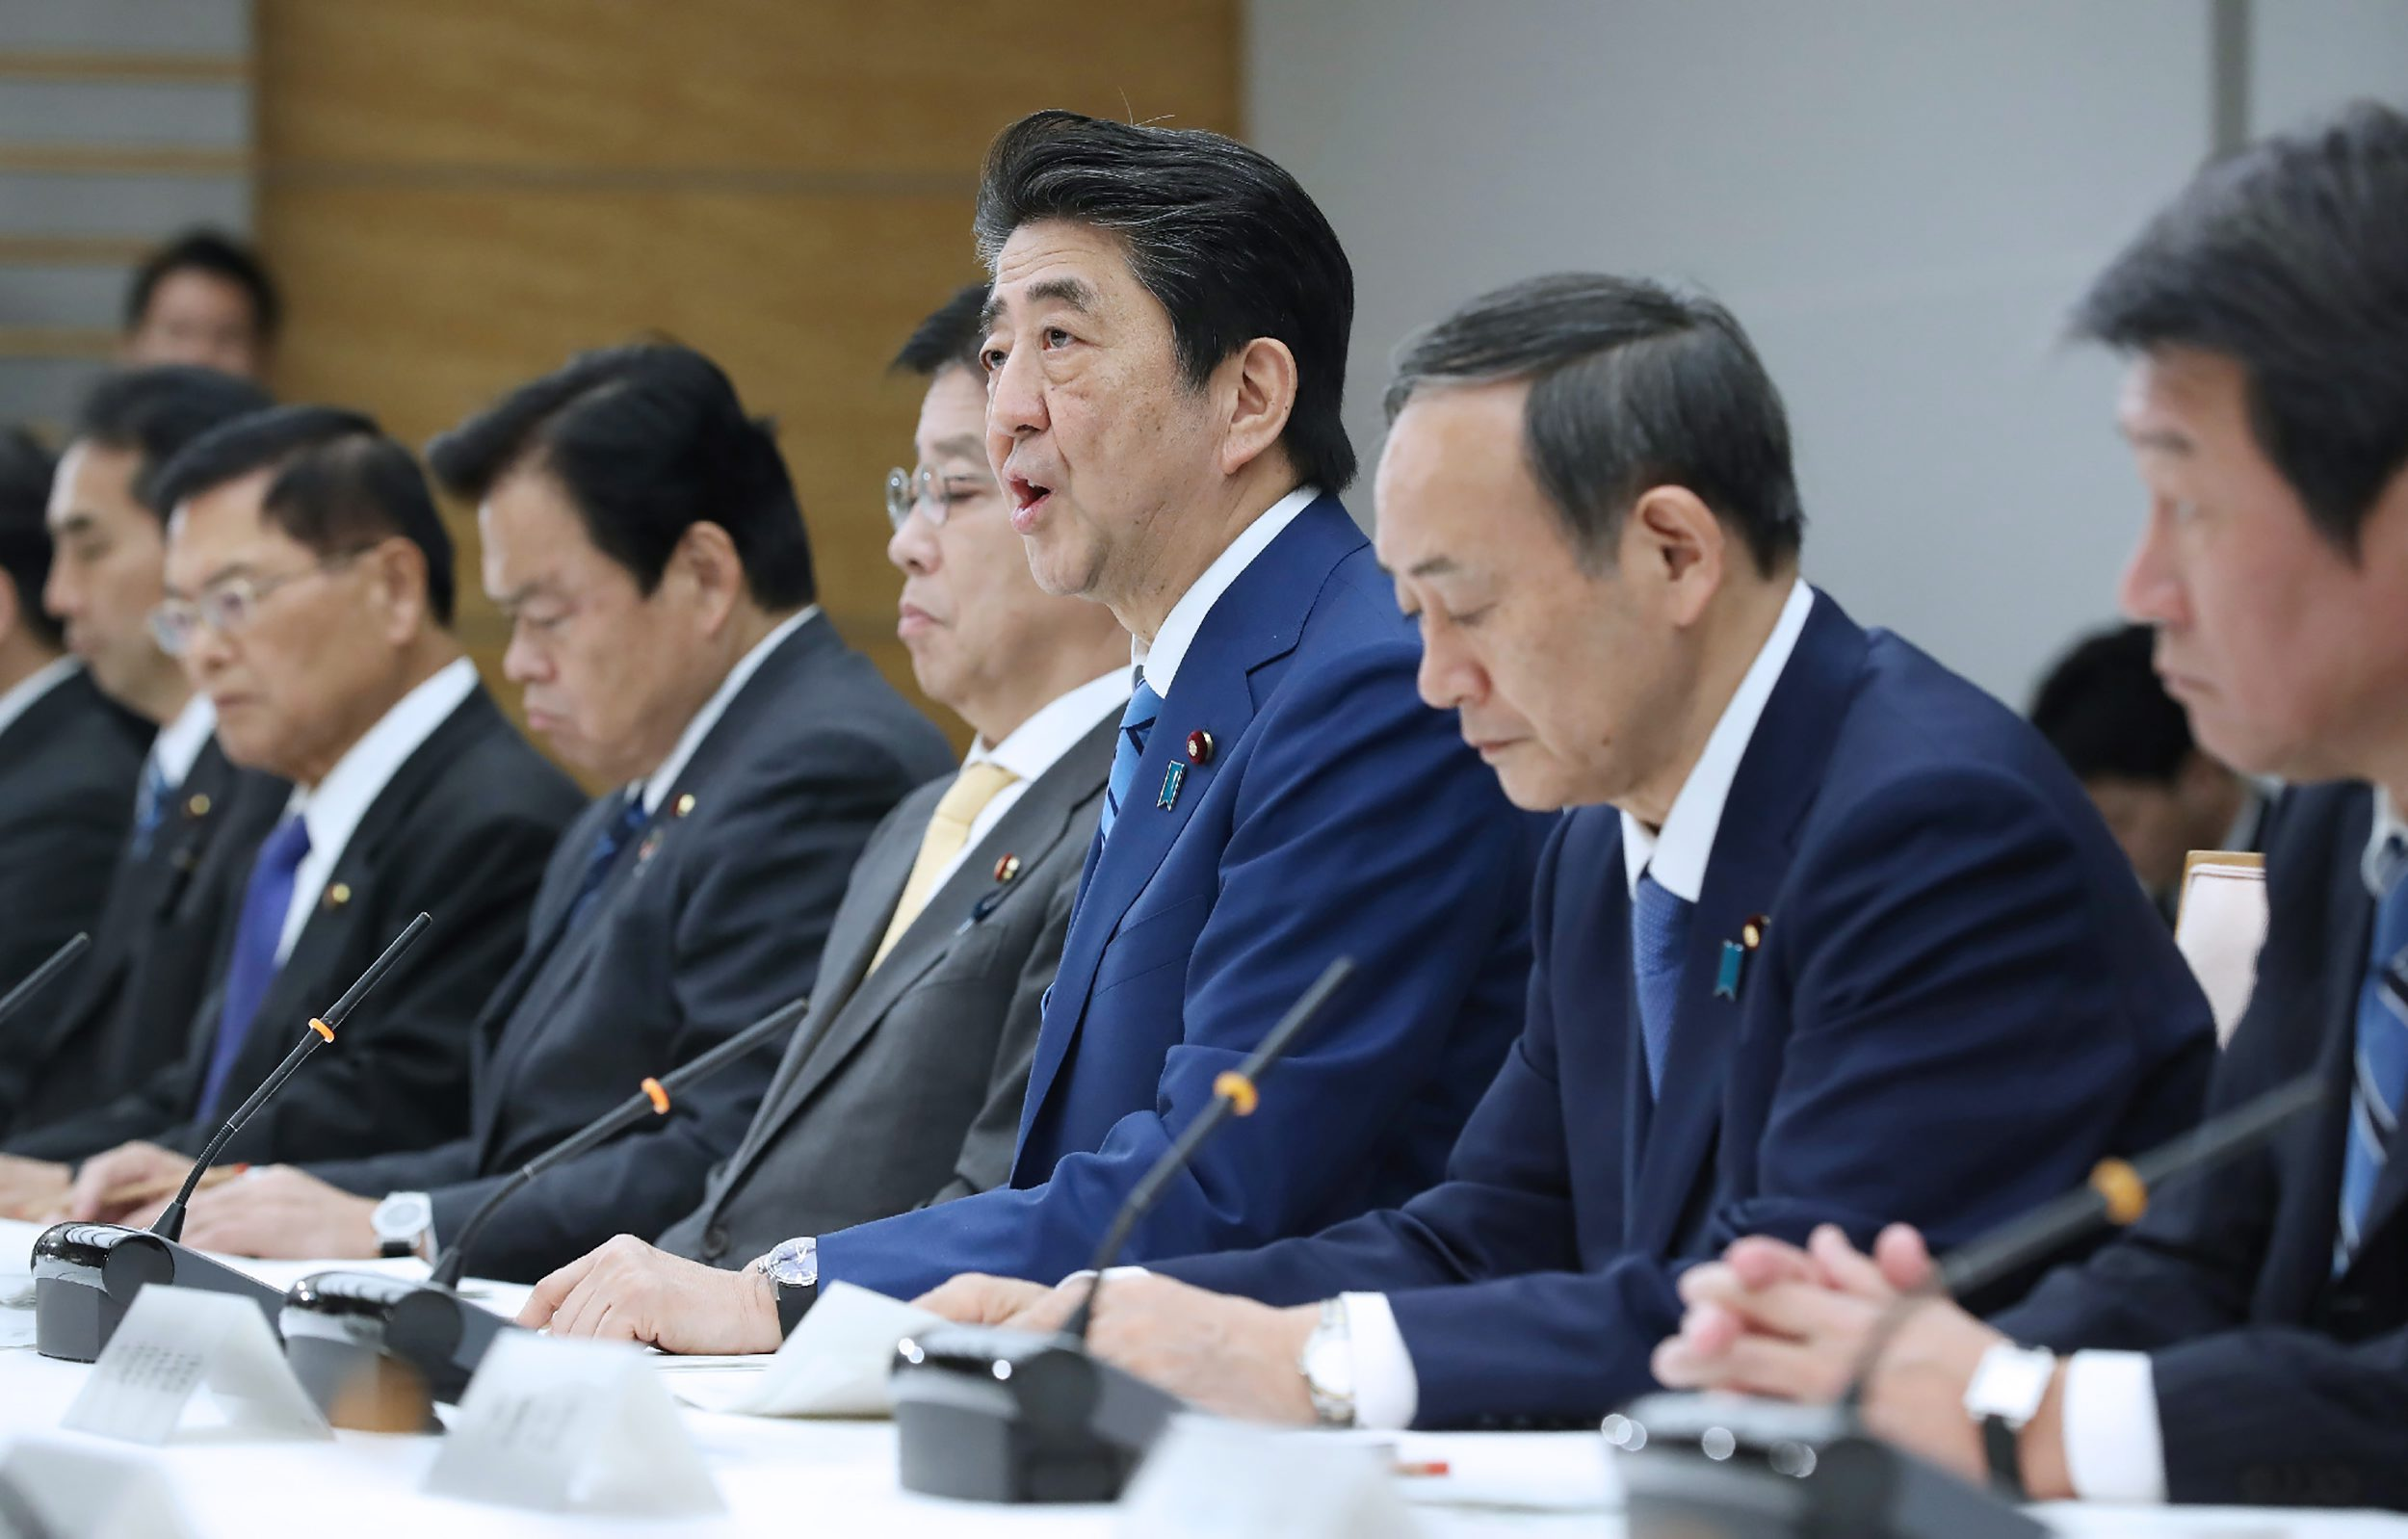 Japan's Prime Minister Shinzo Abe (C) speaks during a meeting at the new COVID-19 coronavirus infectious disease control headquarters at the prime minister's office in Tokyo on February 27, 2020. - Abe called on February 27 on public schools to close nationwide from March 2 to prevent the spread of the new coronavirus. (Photo by STR / JIJI PRESS / AFP) / Japan OUT